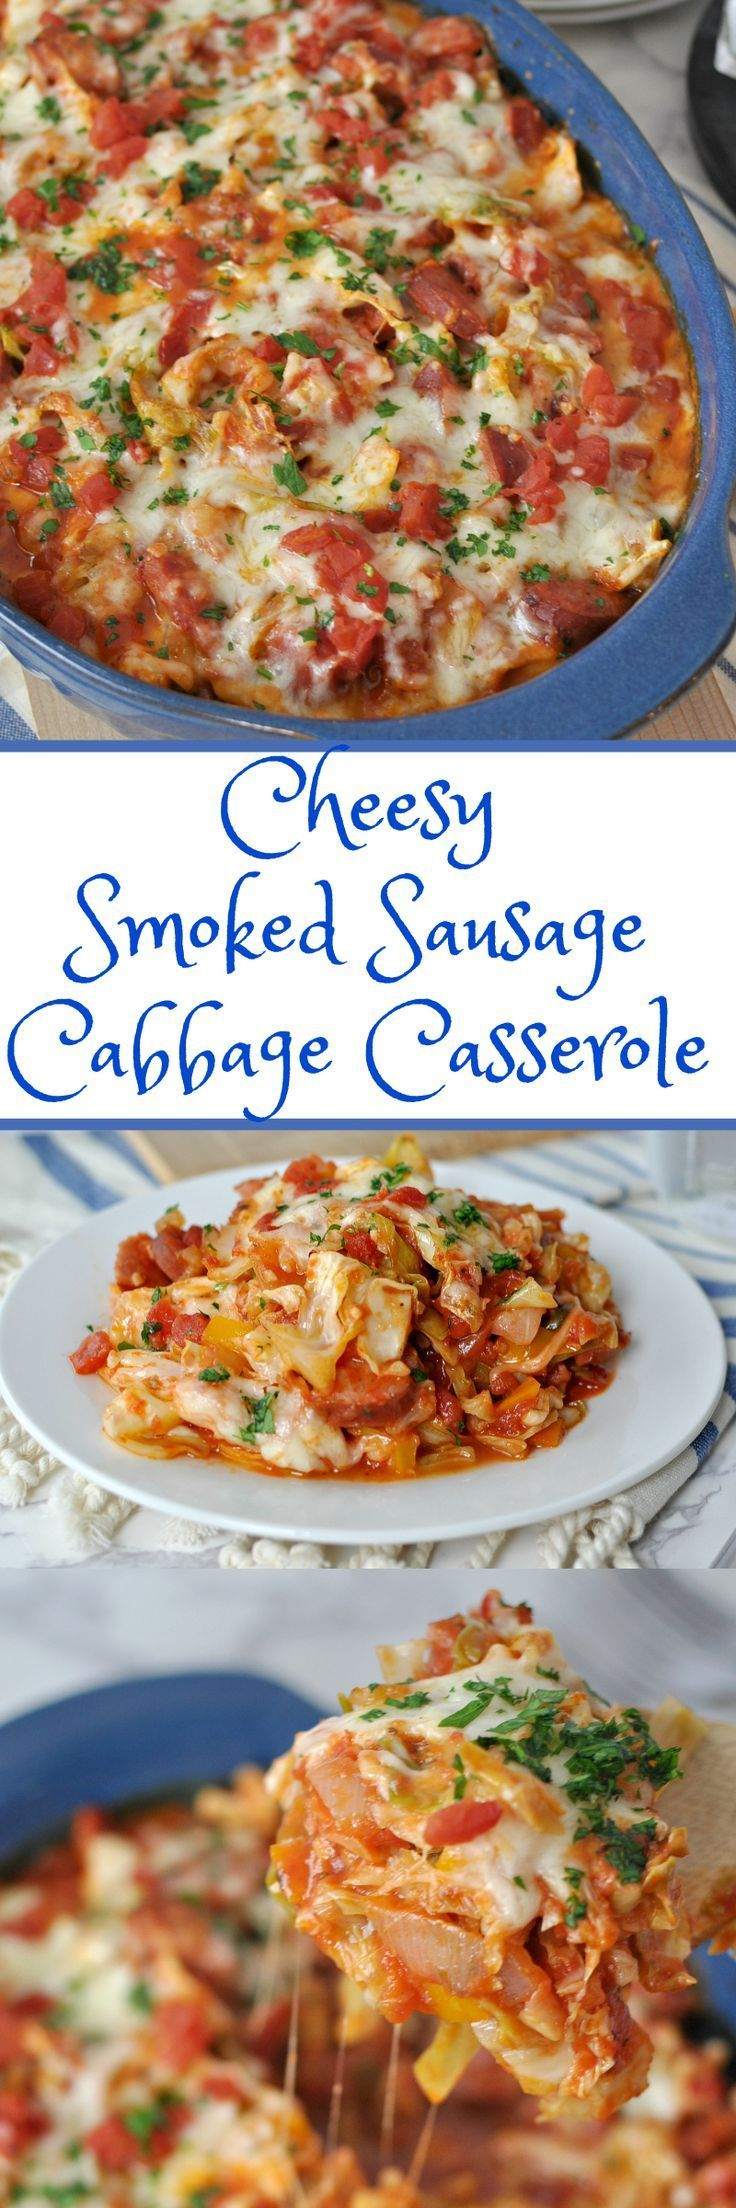 Cheesy Smoked Sausage and Cabbage Casserole | Peace Love and Low Carb